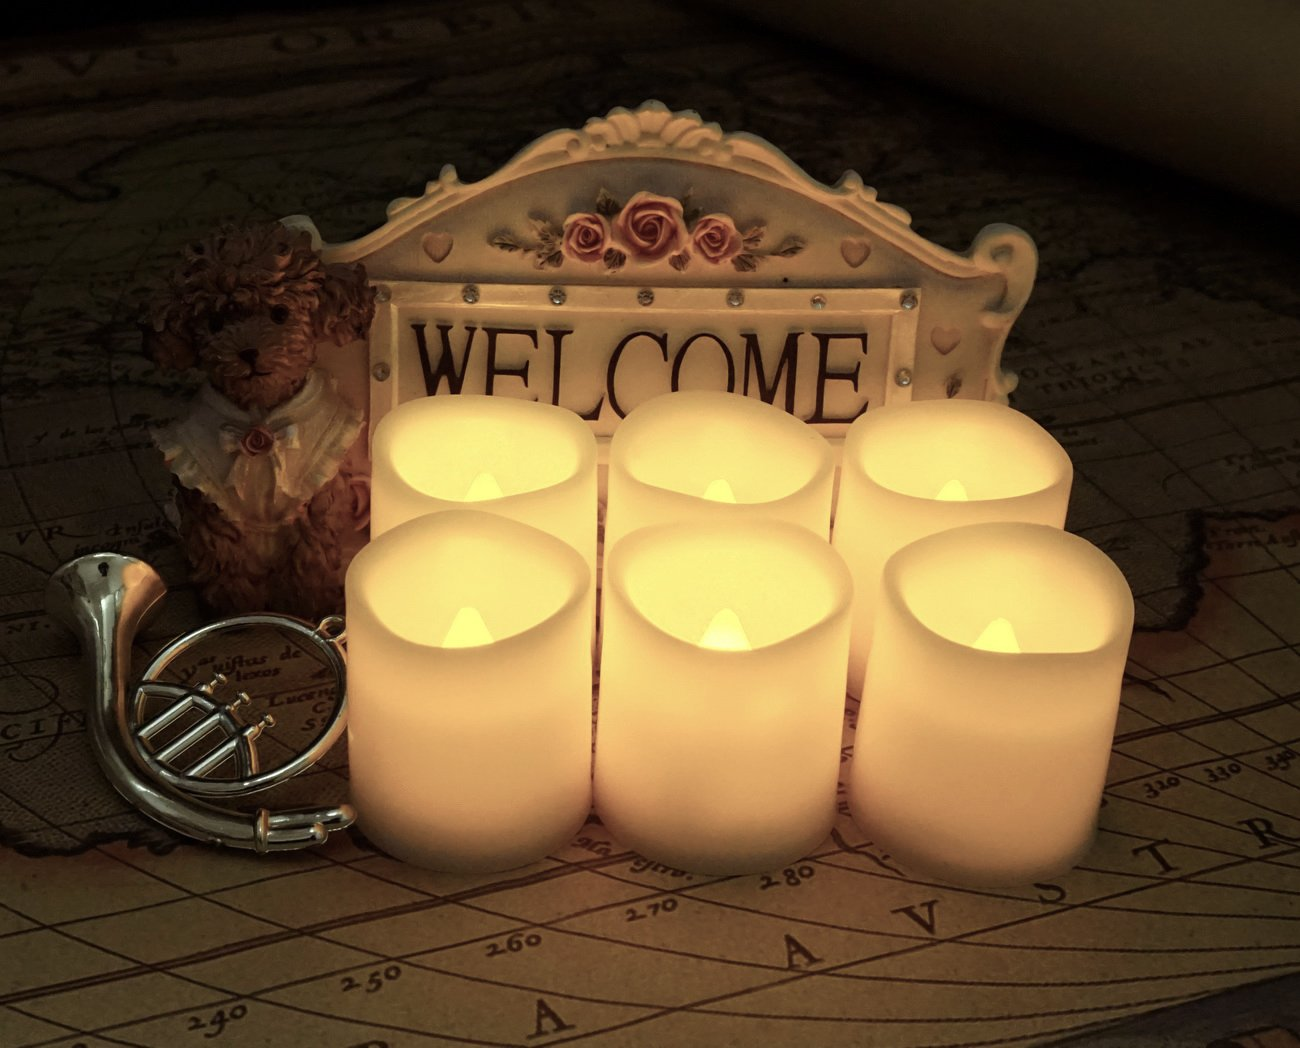 70+ Hours of Lighting, 6 Extra Batteries Included, LED Candles, Flameless Candle Set, Votive Candles, Centerpieces, Wedding Decor